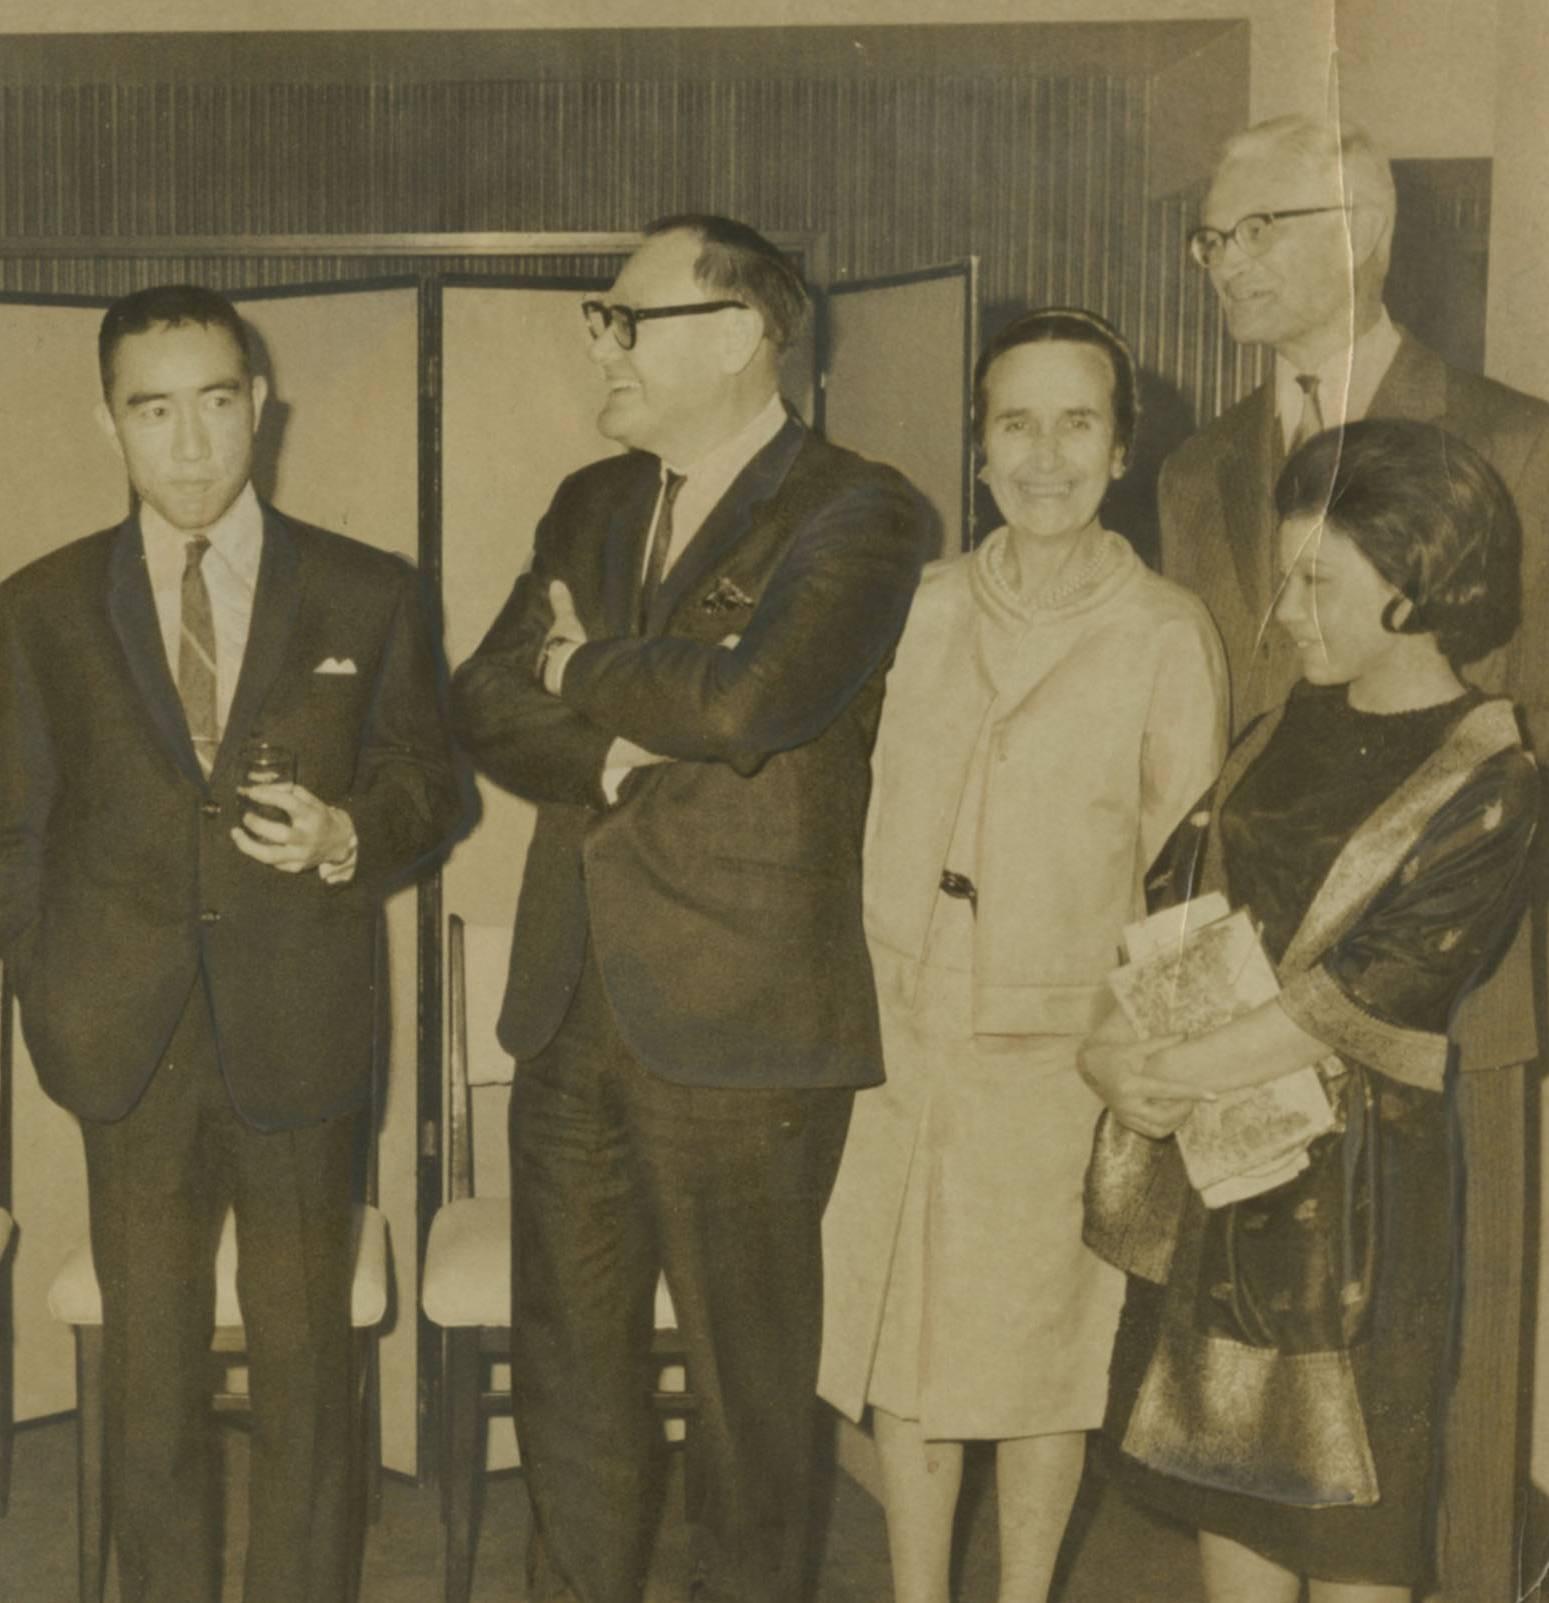 Celebrated: Guest of honor Yukio Mishima attends a dinner at the Foreign Correspondents Club in Tokyo on April 18, 1966, with (from right) his wife, Yoko, Swedish Ambassador Karl Fredrik Almqvist and his wife, and John P. Roderick, president of the FCCJ. | THE JAPAN TIMES